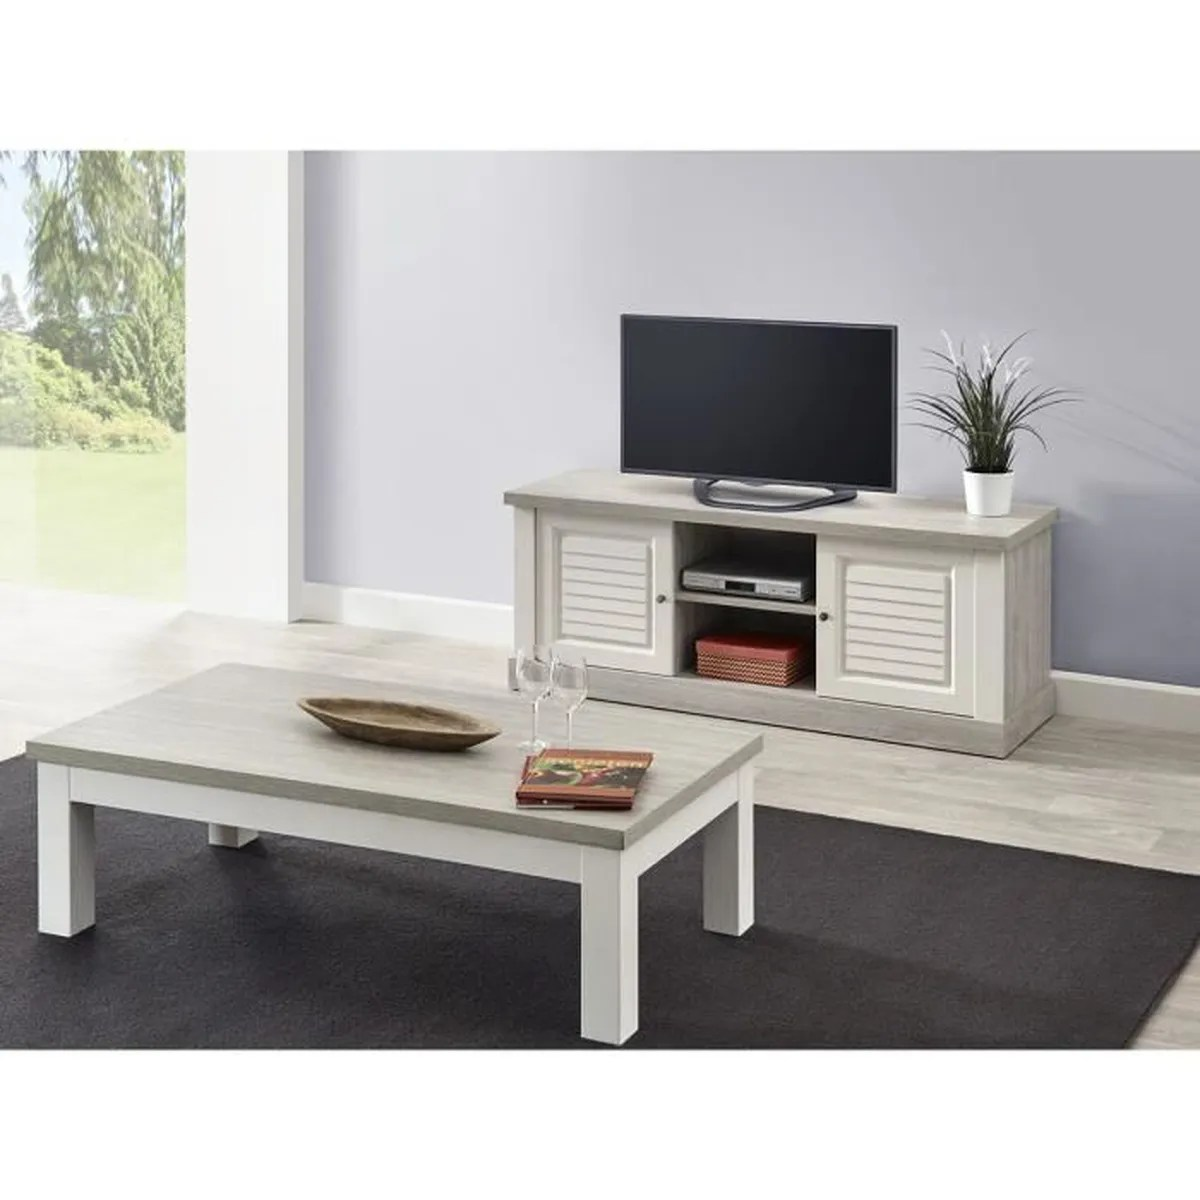 Ensemble Meuble Tv Table Basse Conrad Ensemble Table Basse Et Meuble Tv Blanc Achat Vente